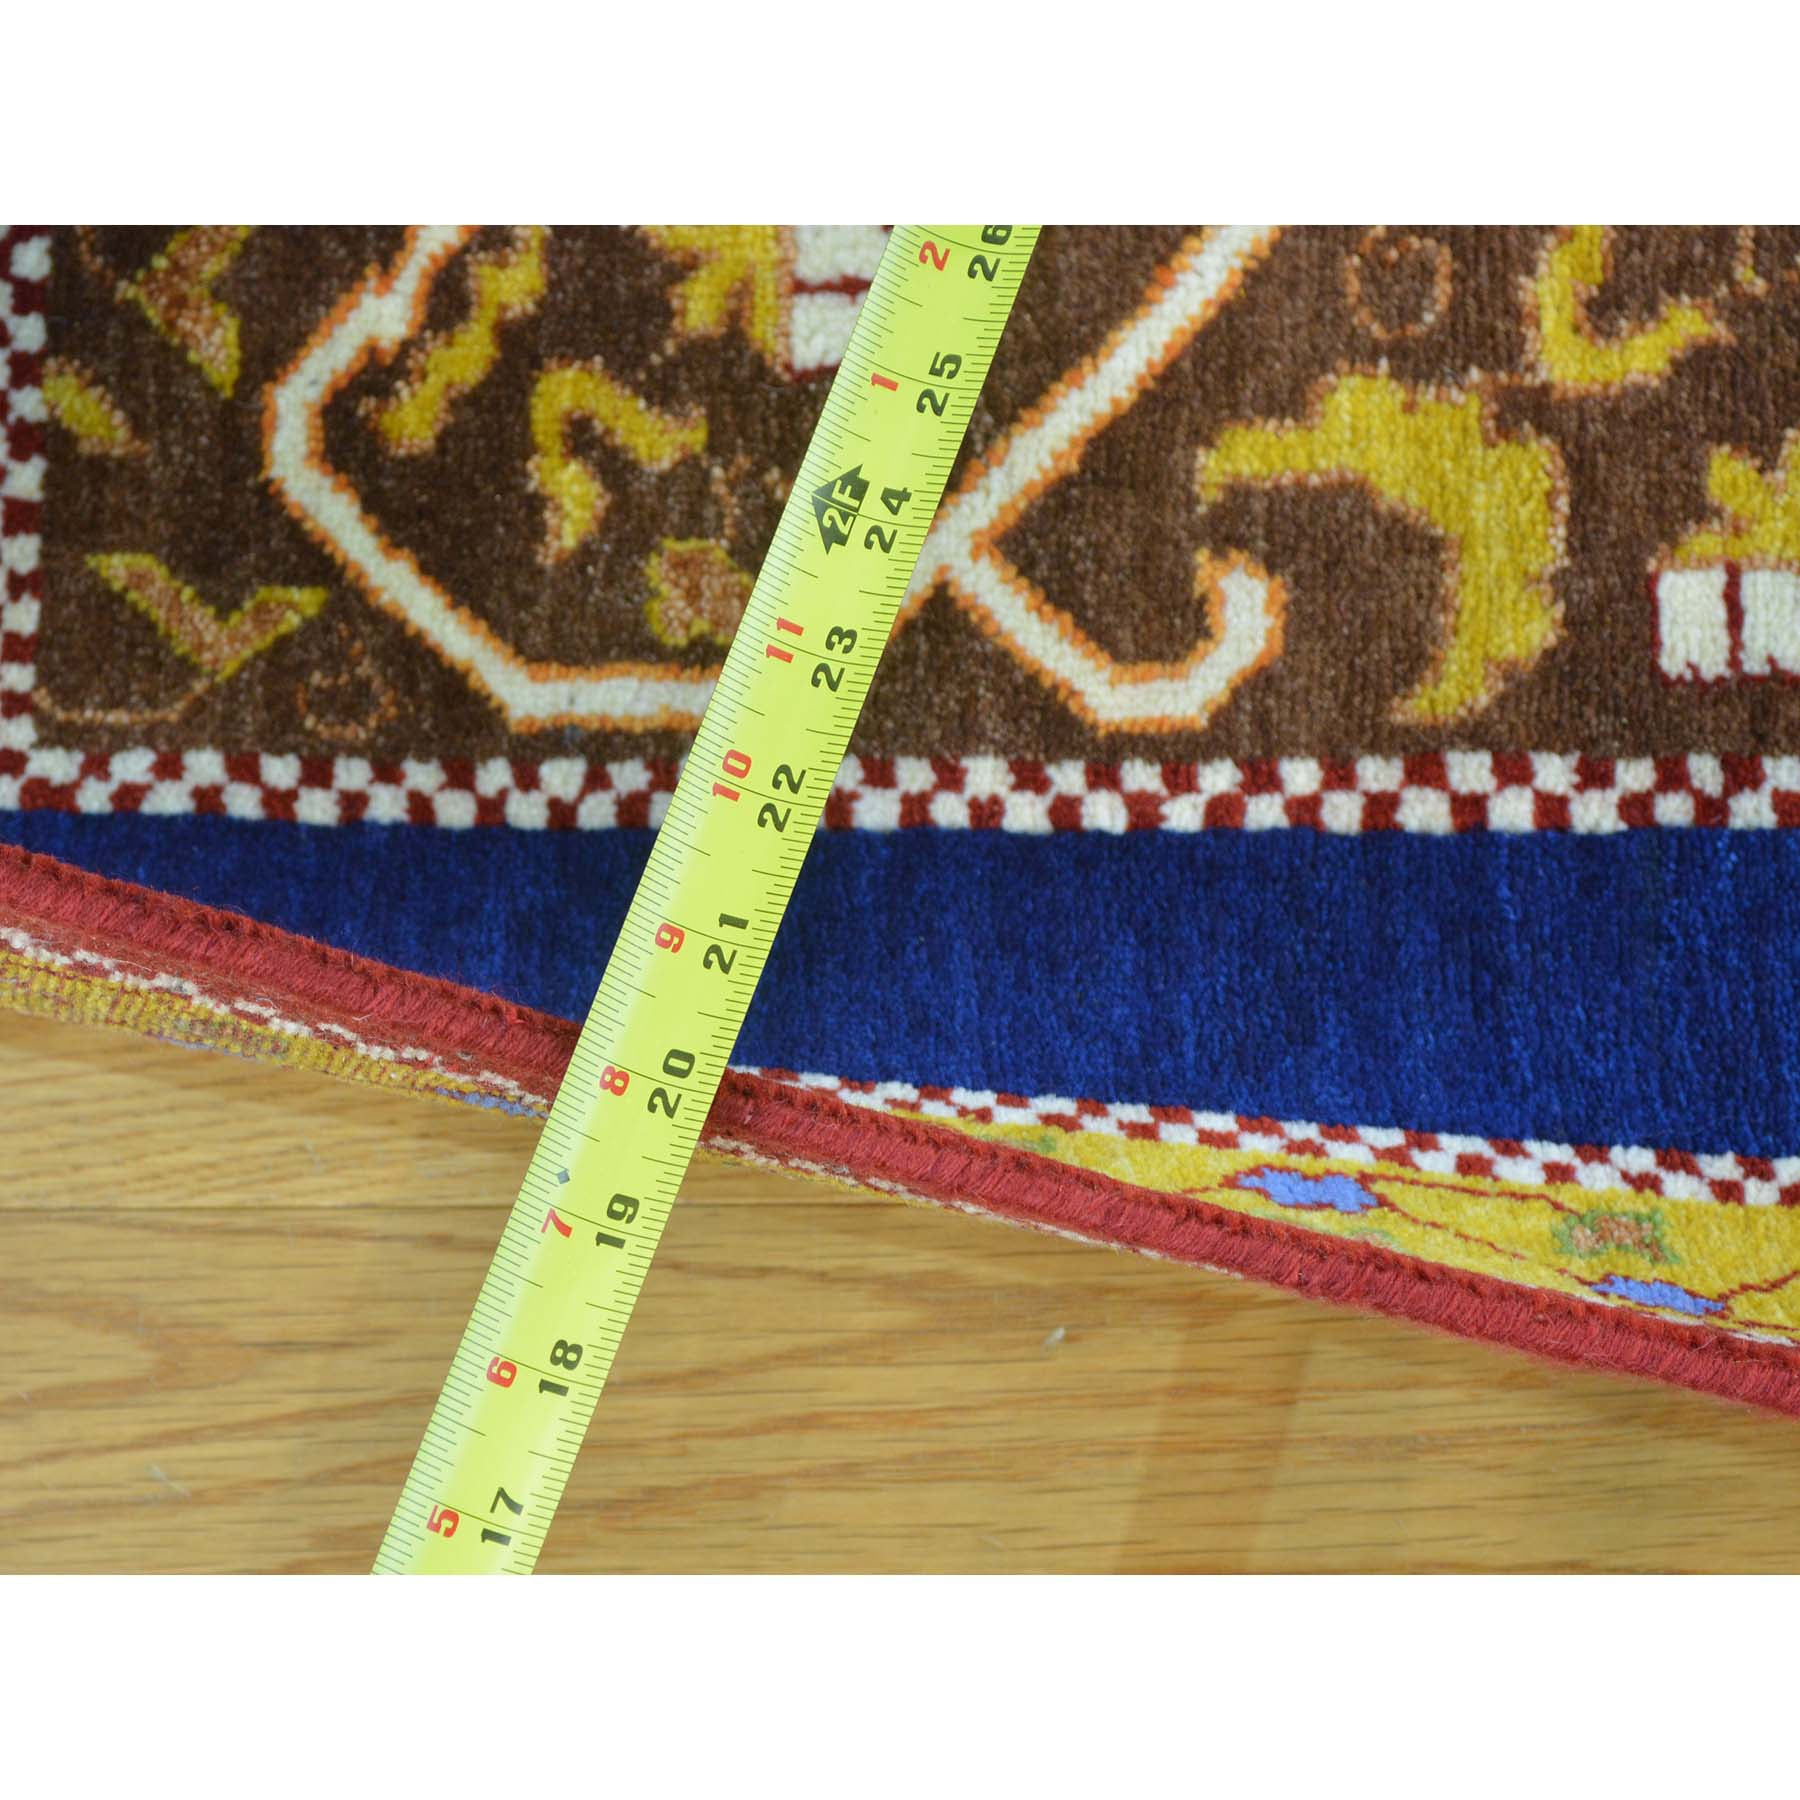 "Handmade Tribal & Geometric Runner Rug > Design# SH26895 > Size: 2'-9"" x 8'-3"" [ONLINE ONLY]"